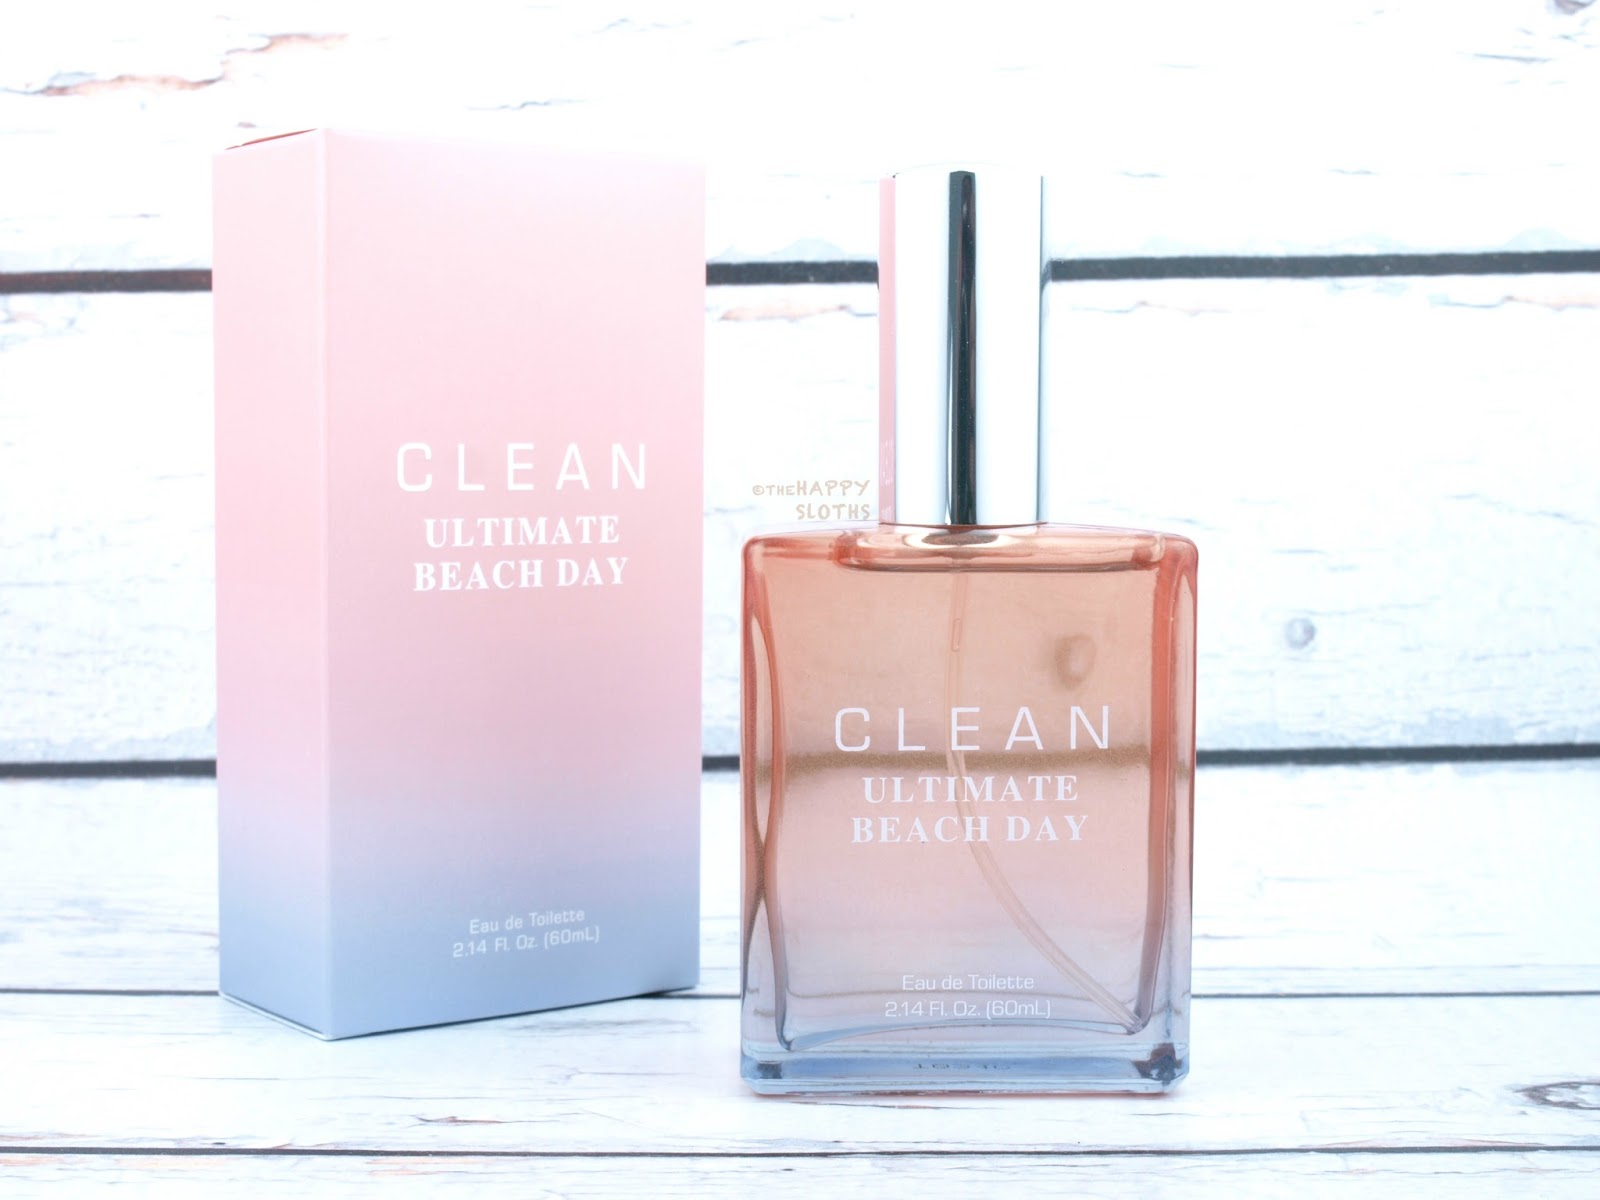 Clean Ultimate Beach Day Eau de Toilette: Review